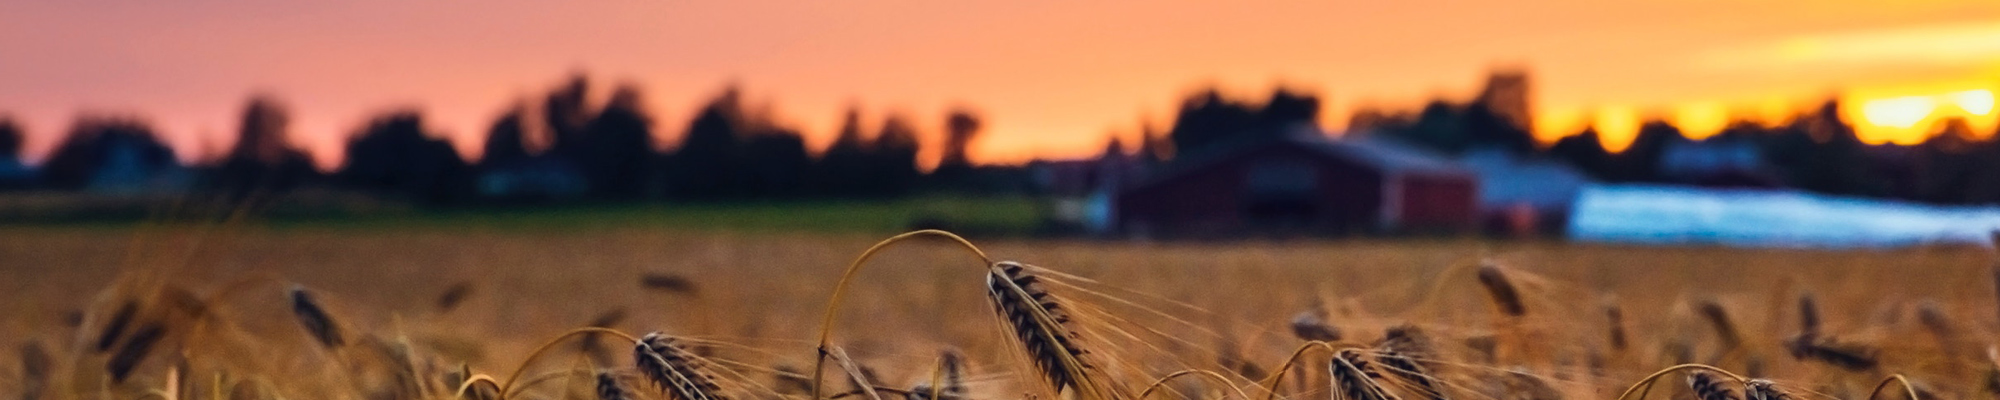 Wheat field in evening